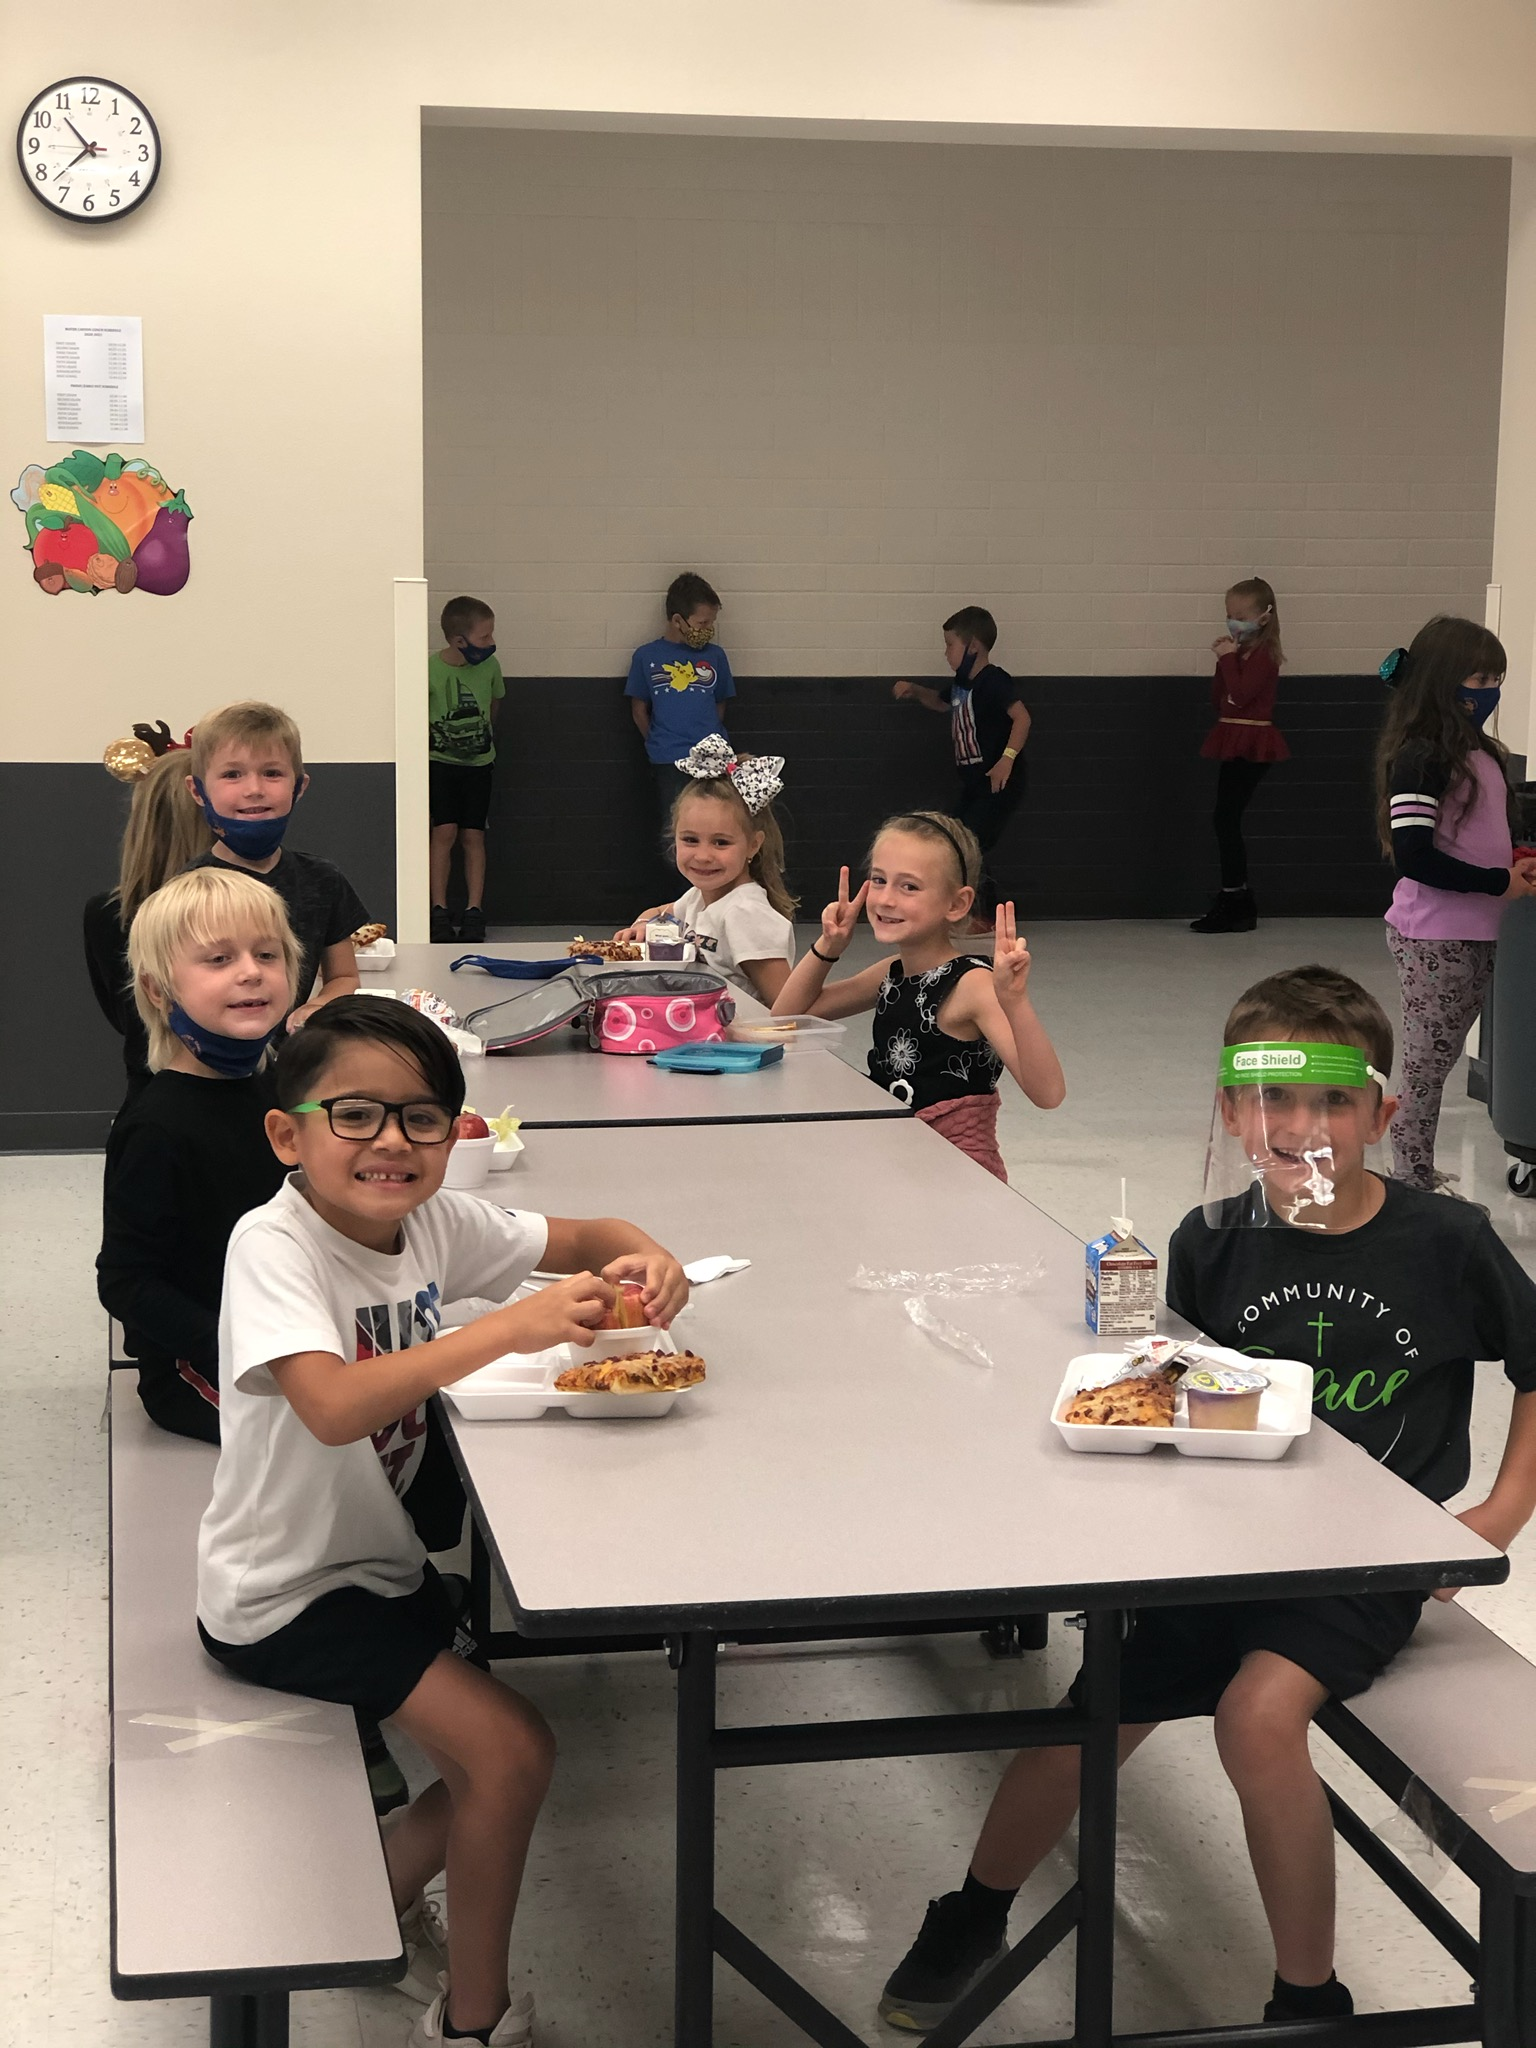 1st Graders At Lunch